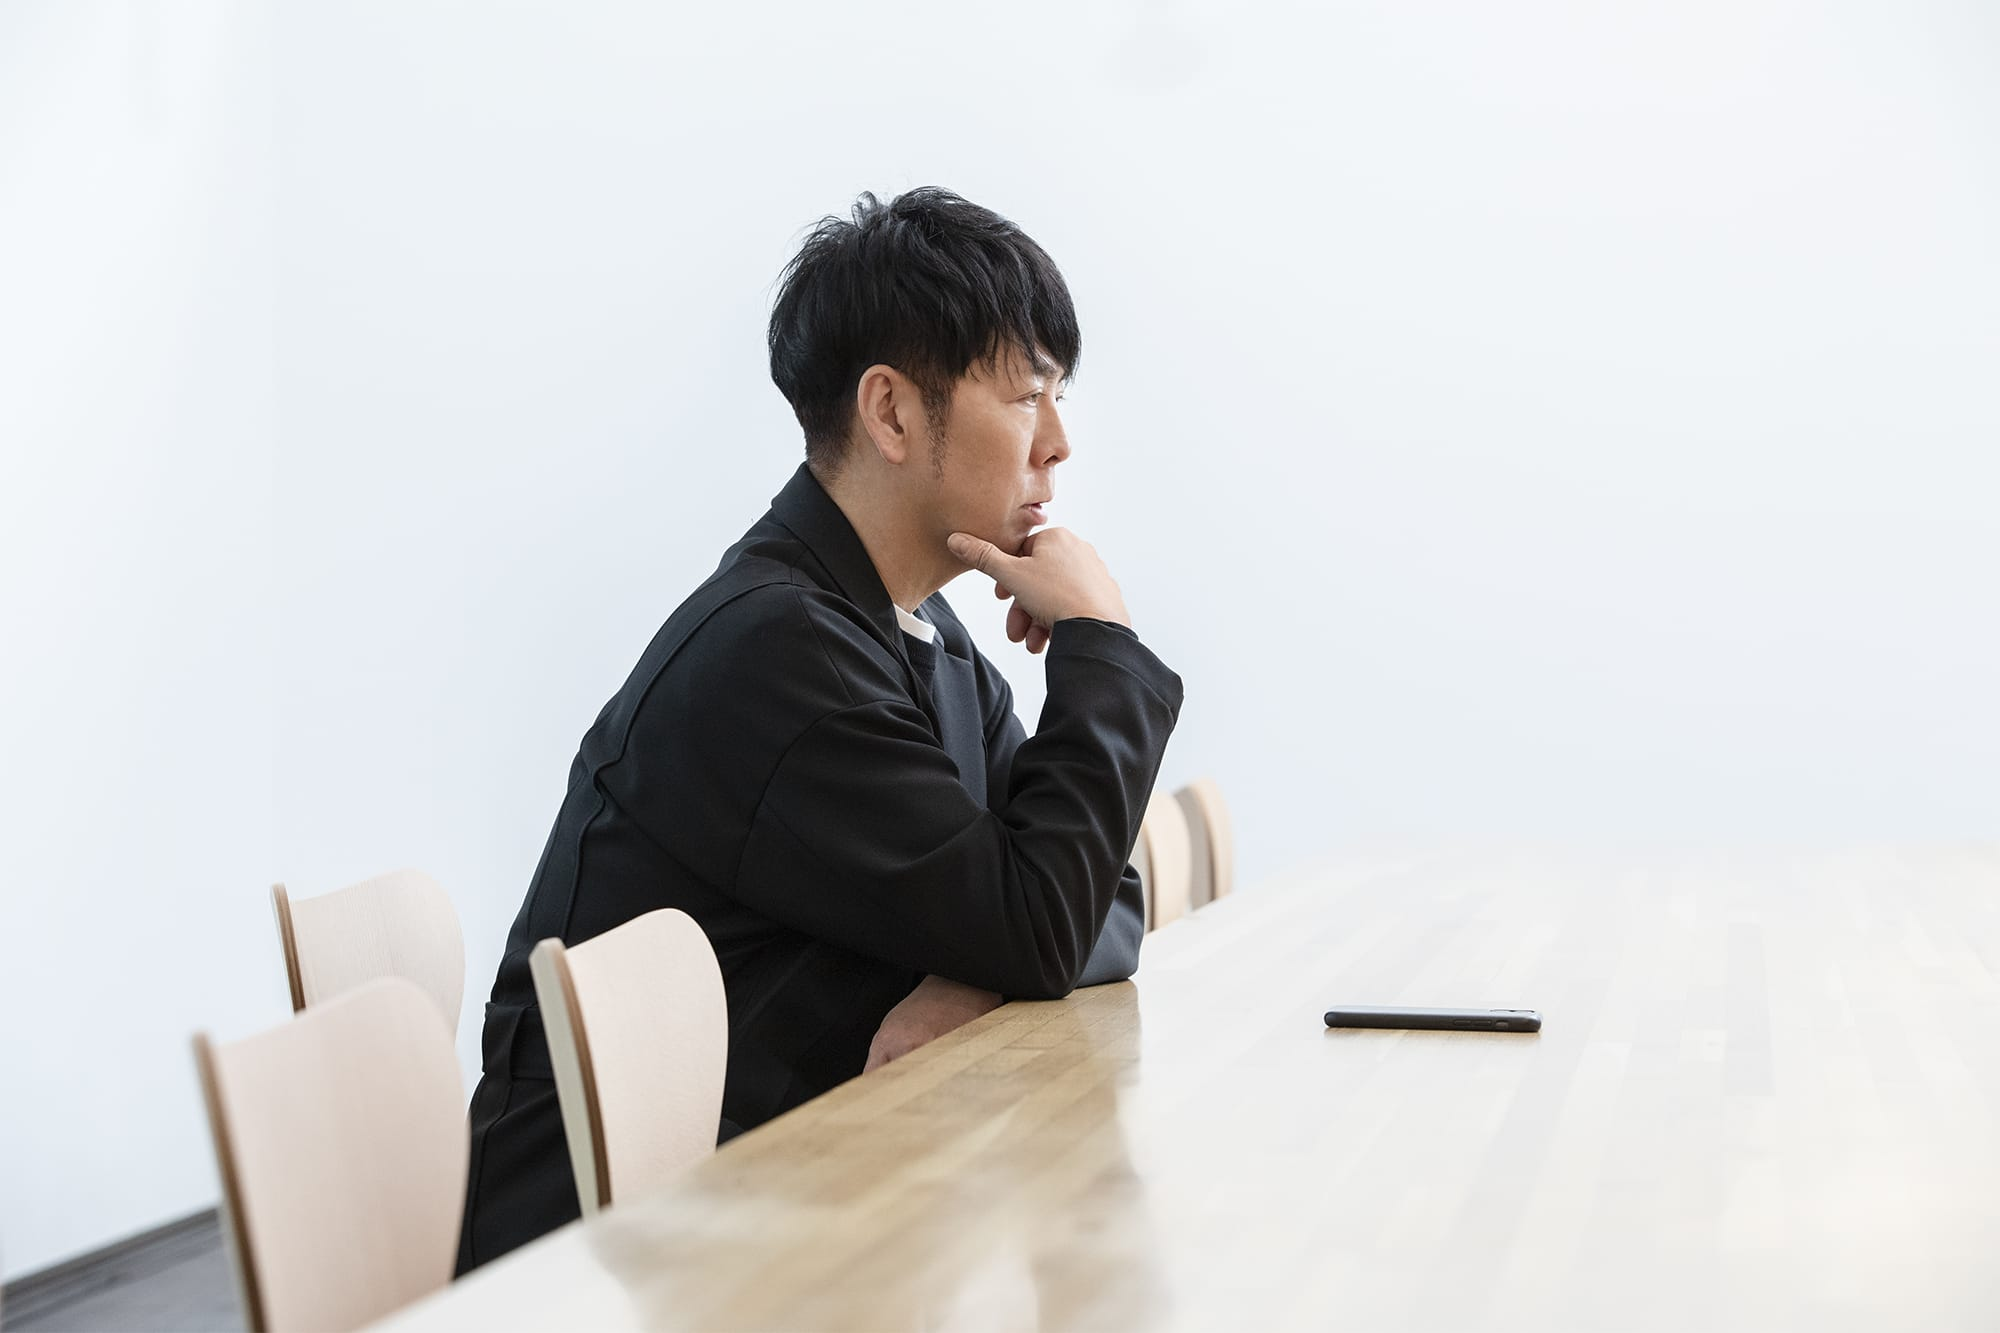 Kashiwa Sato's office is designed by Takaharu + Yui Tezuka. The bright white walls are storage spaces without any handles and there is only a large table with chairs placed equally spaced in the large office. This interview was held at his beautiful office where his method for reaching the essentials is implemented.